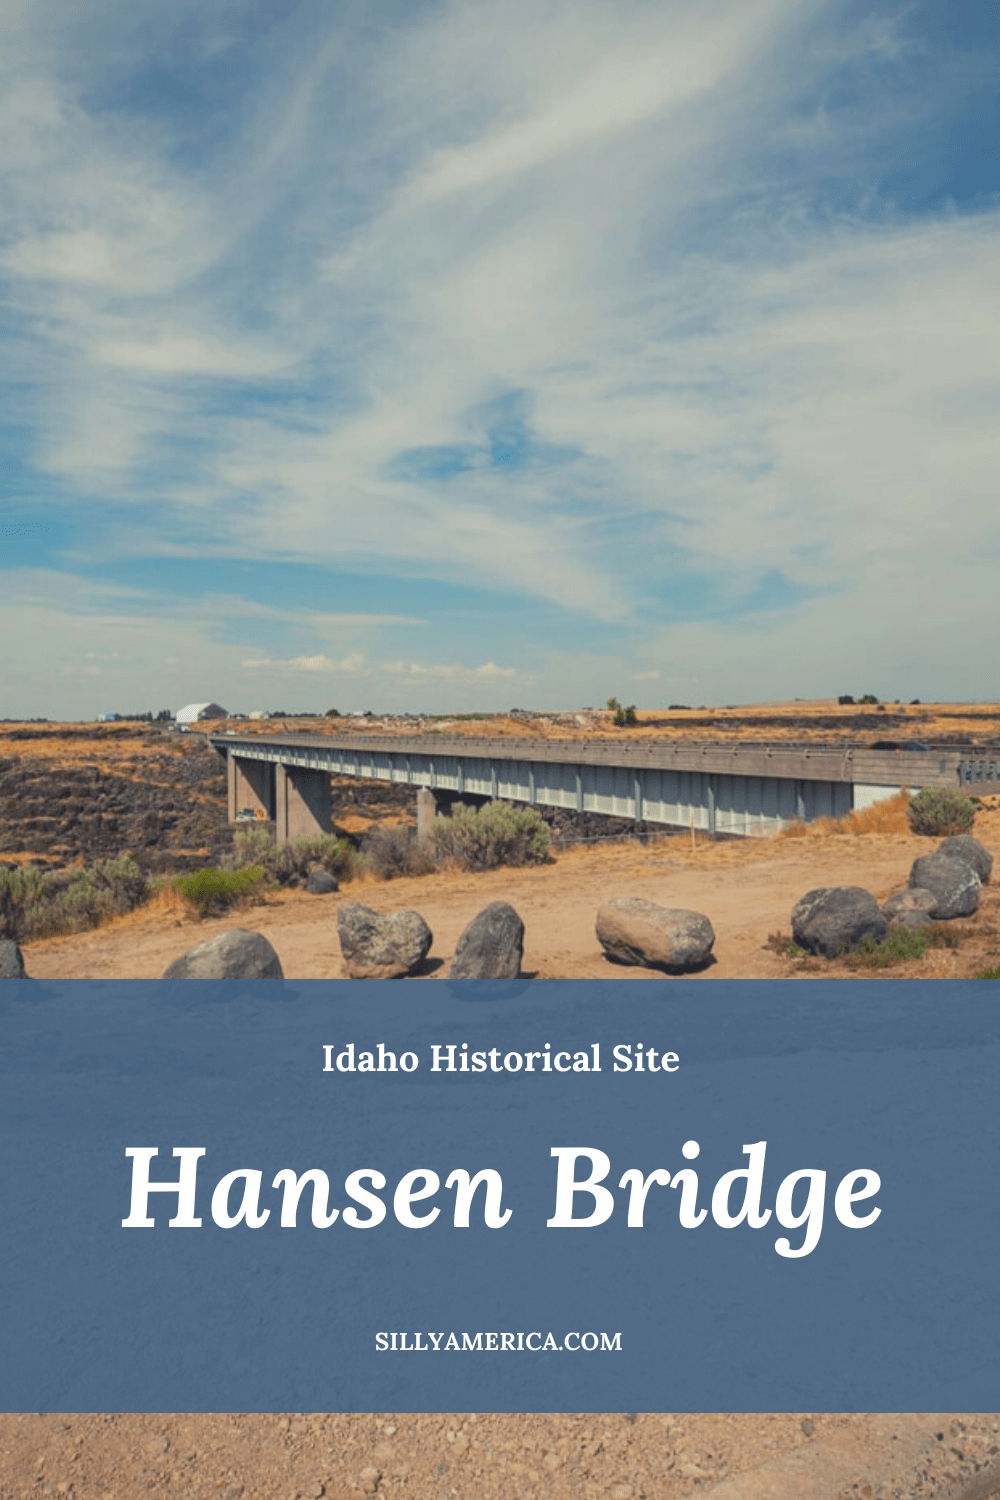 Visiting Shoshone Falls in Idaho? Veer over to check out the scenic outlook at The Hansen Bridge on your way there or back.  Prior to a steel high suspension bridge being constructed in this location in 1919, the only way to traverse the 16-mile river gorge was via rowboat. The $100,000, 900-foot bridge, was built 400 feet above the Snake River with 14 cables and could accommodate two lanes of traffic.  #RoadTrip #IdahoRoadTrip #IdahoRoadTripBucketLists #ThingsToDoInIdaho